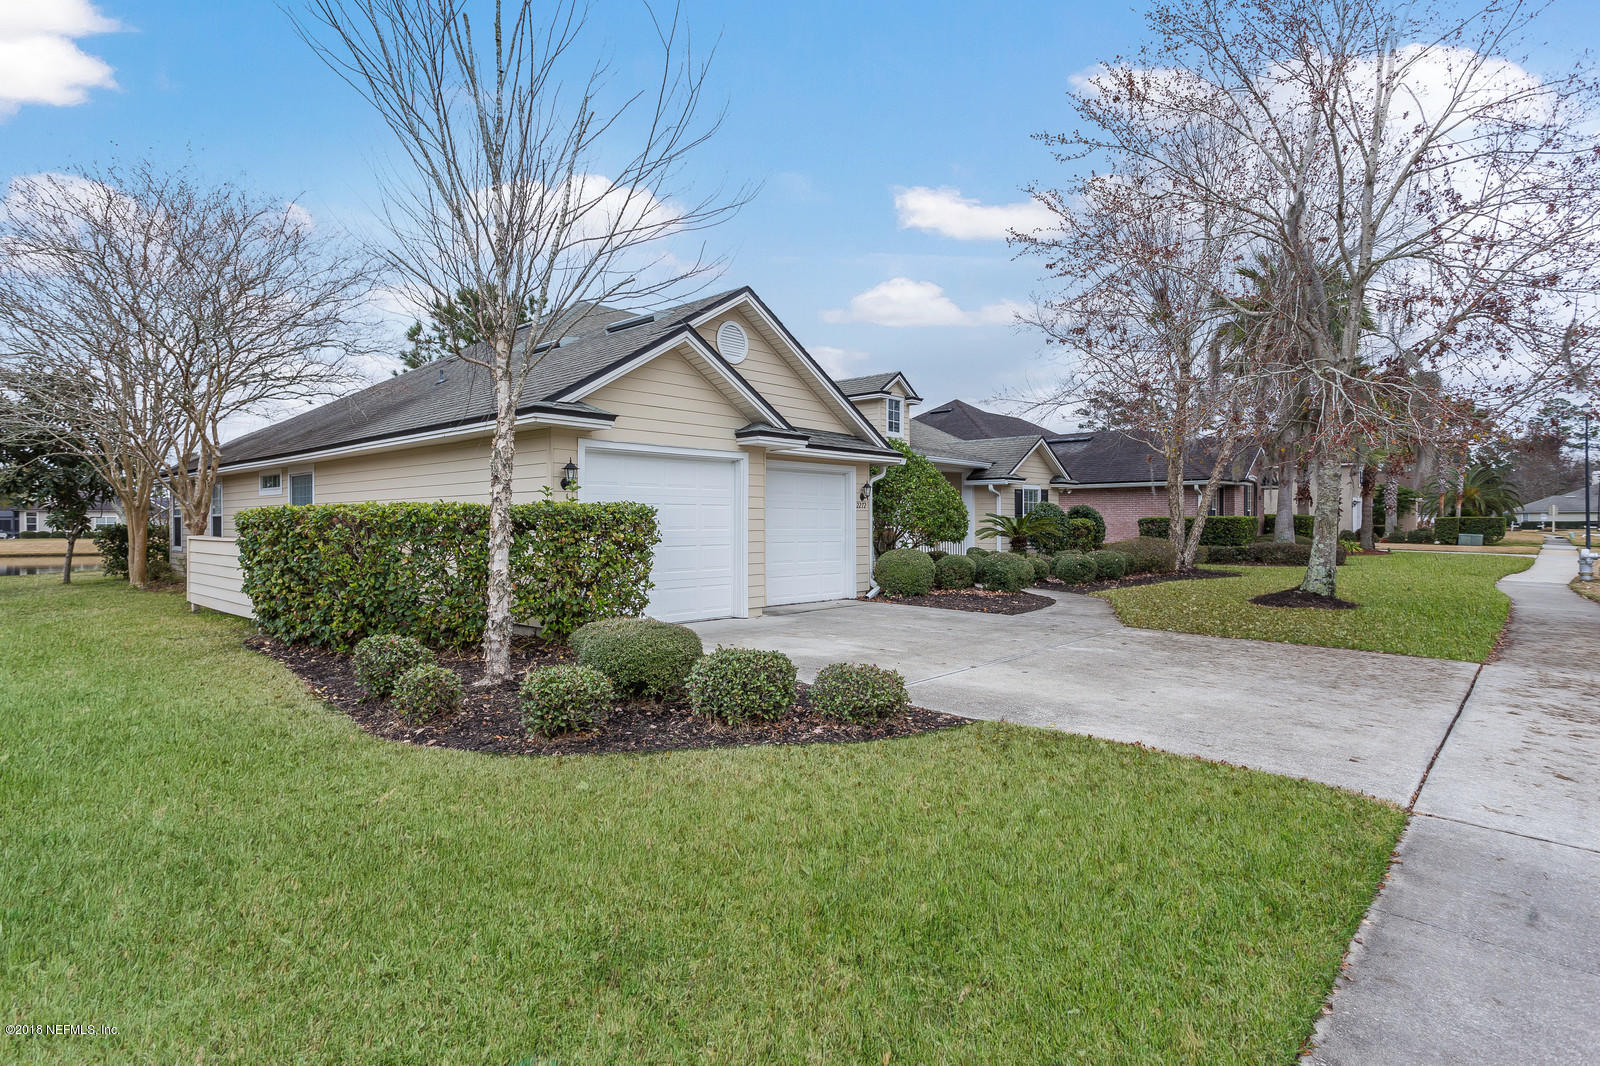 2272 BROOK, ORANGE PARK, FLORIDA 32003, 5 Bedrooms Bedrooms, ,4 BathroomsBathrooms,Residential - single family,For sale,BROOK,954438